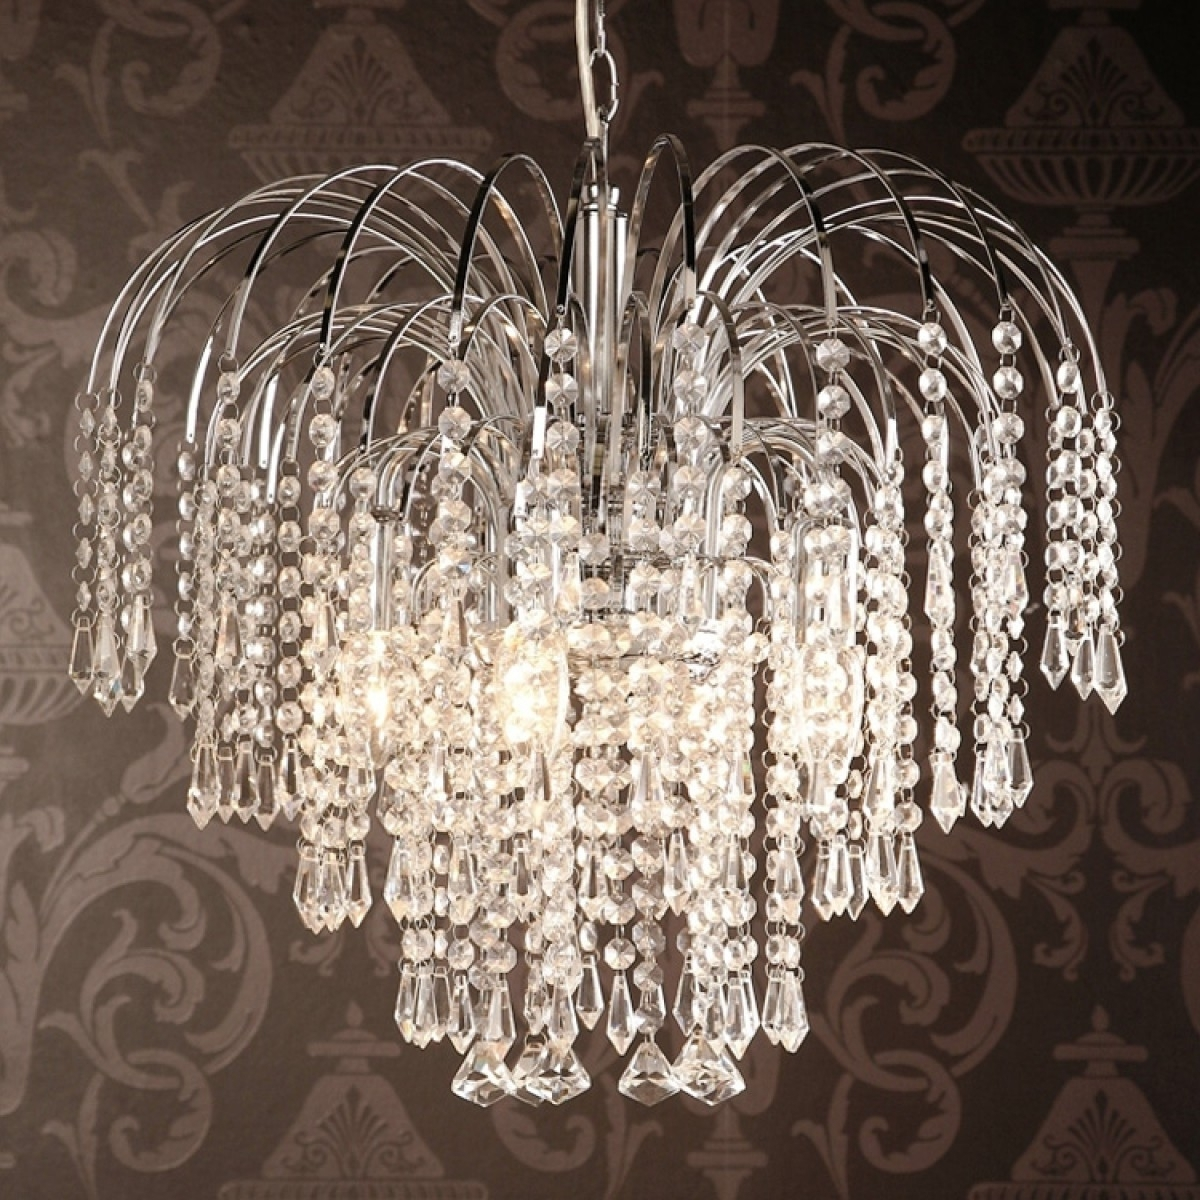 Crystal Waterfall Chandelier With Regard To Best And Newest Four Light Chrome Crystal Chandelier (View 8 of 20)